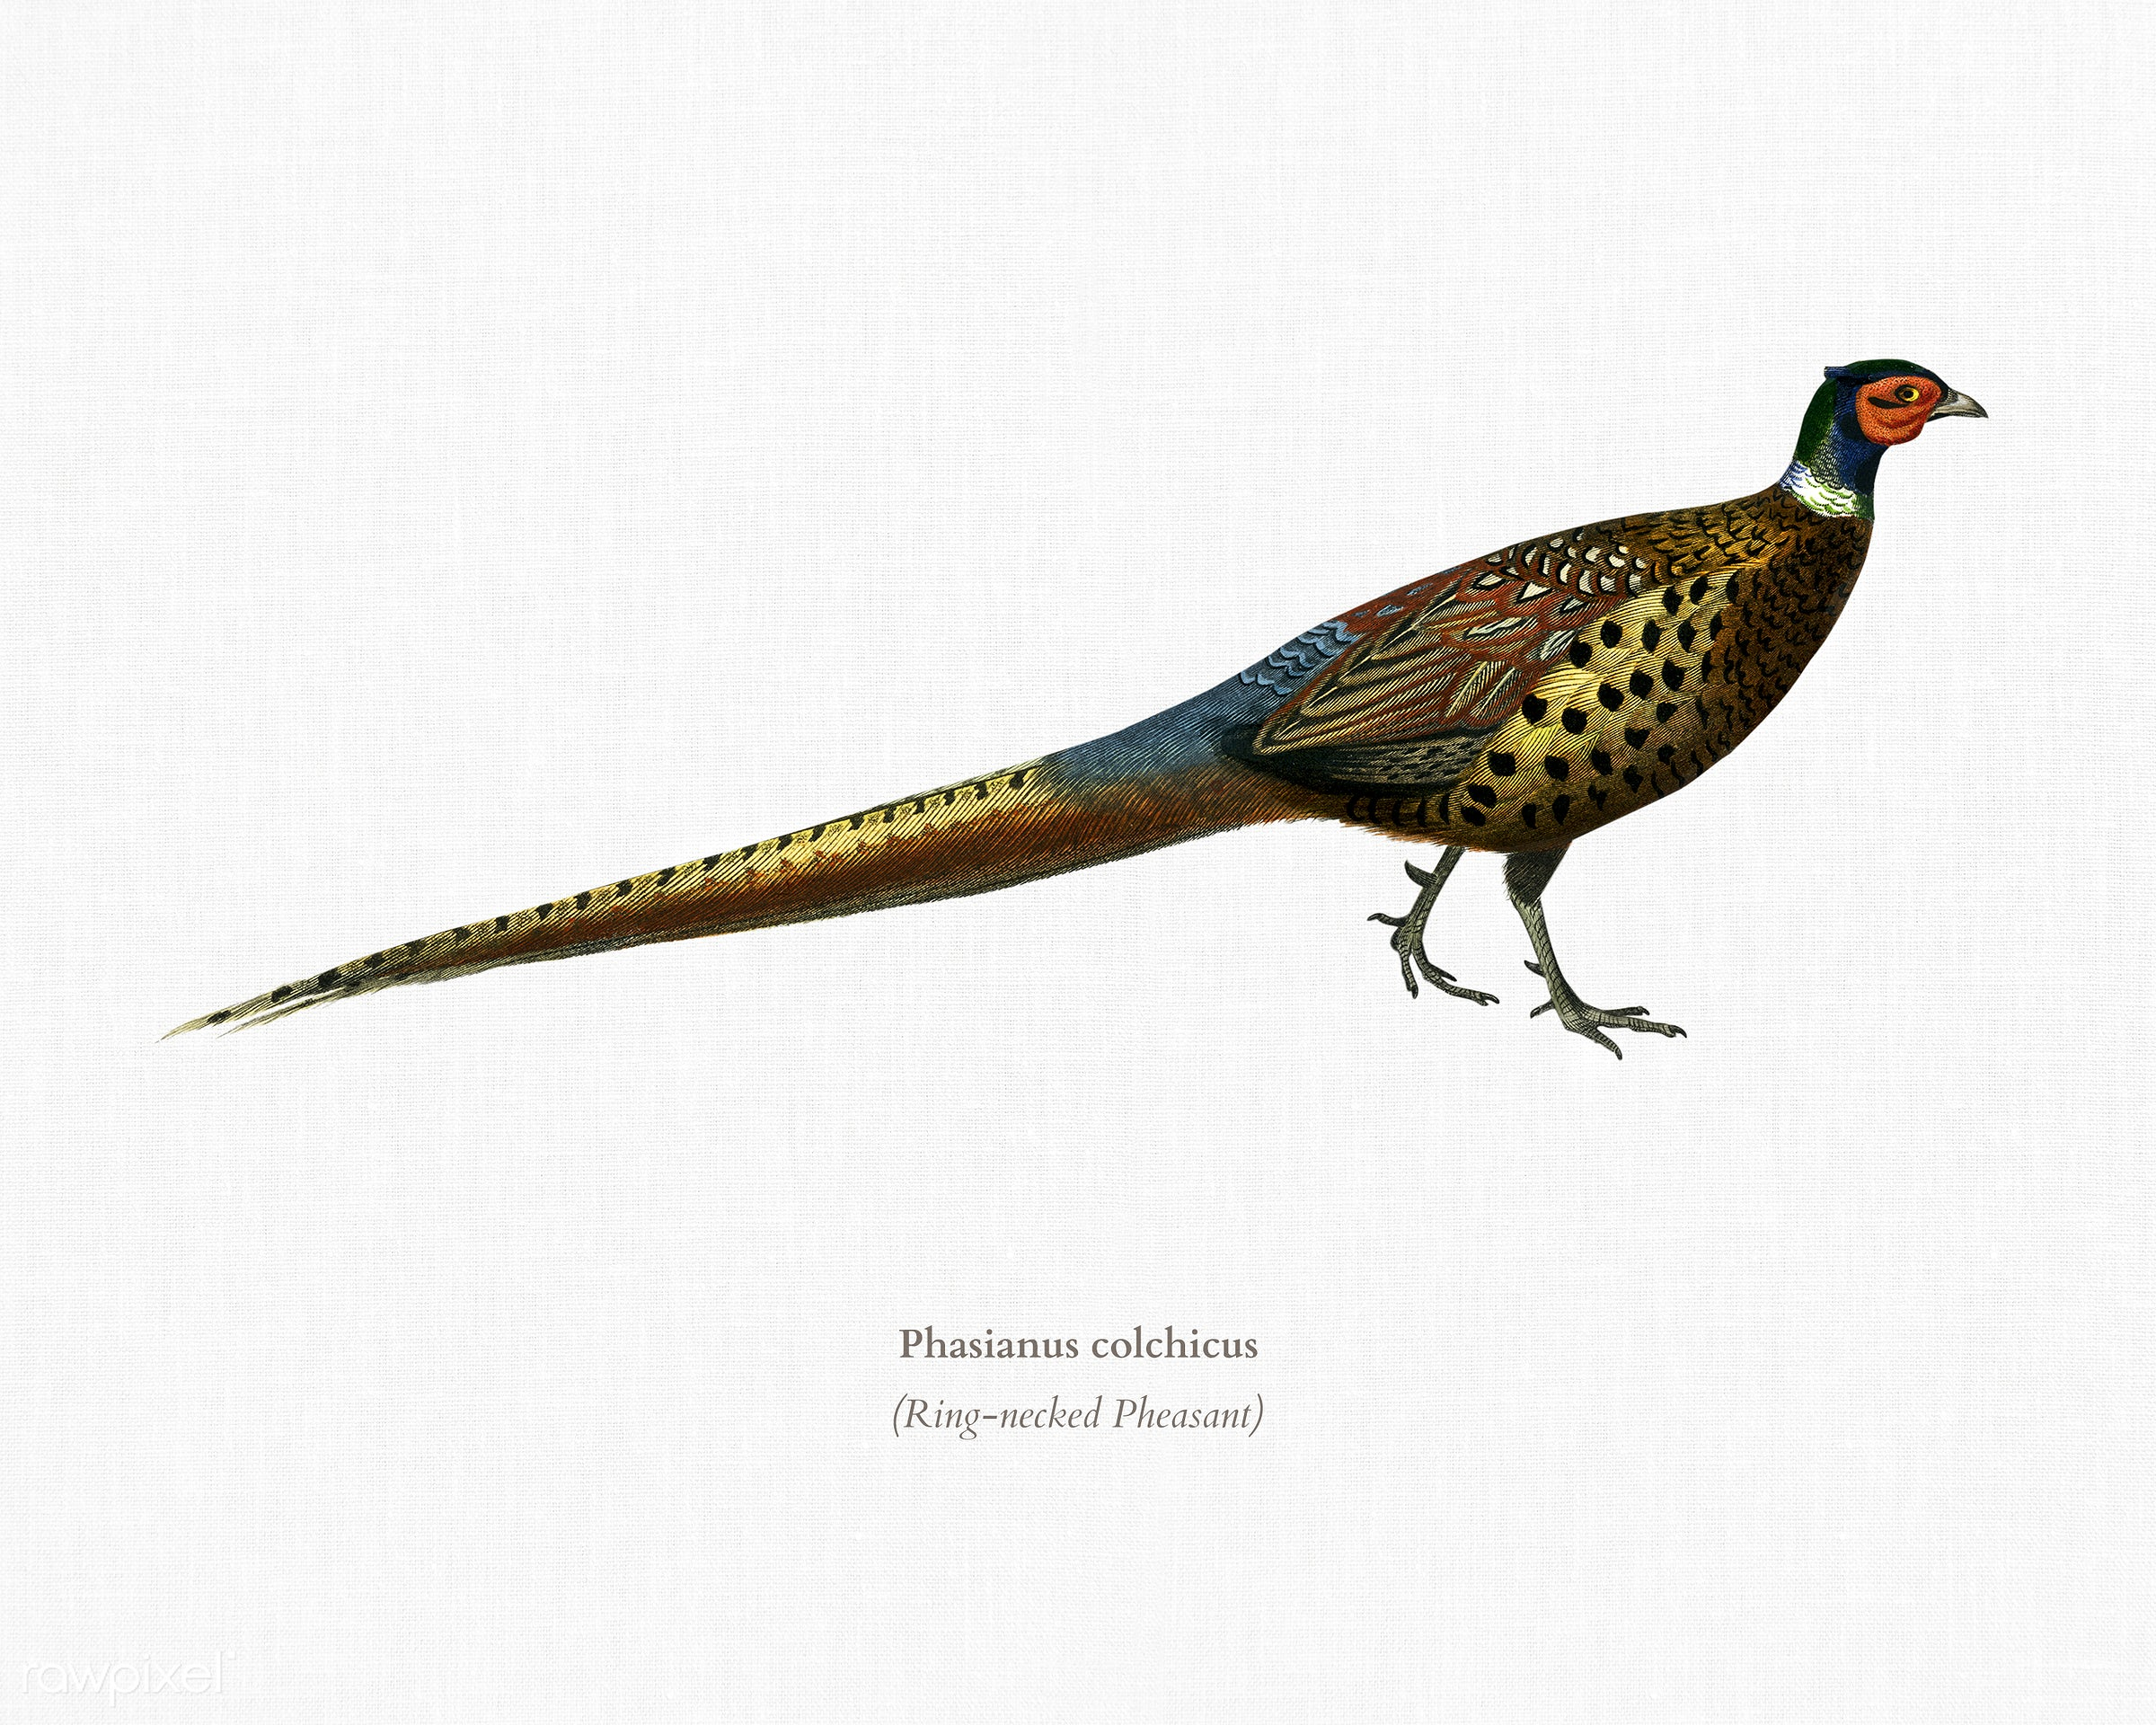 Ring-neckrd pheasant (Phasianus colchicus) illustrated by Charles Dessalines D' Orbigny (1806-1876). Digitally enhanced...